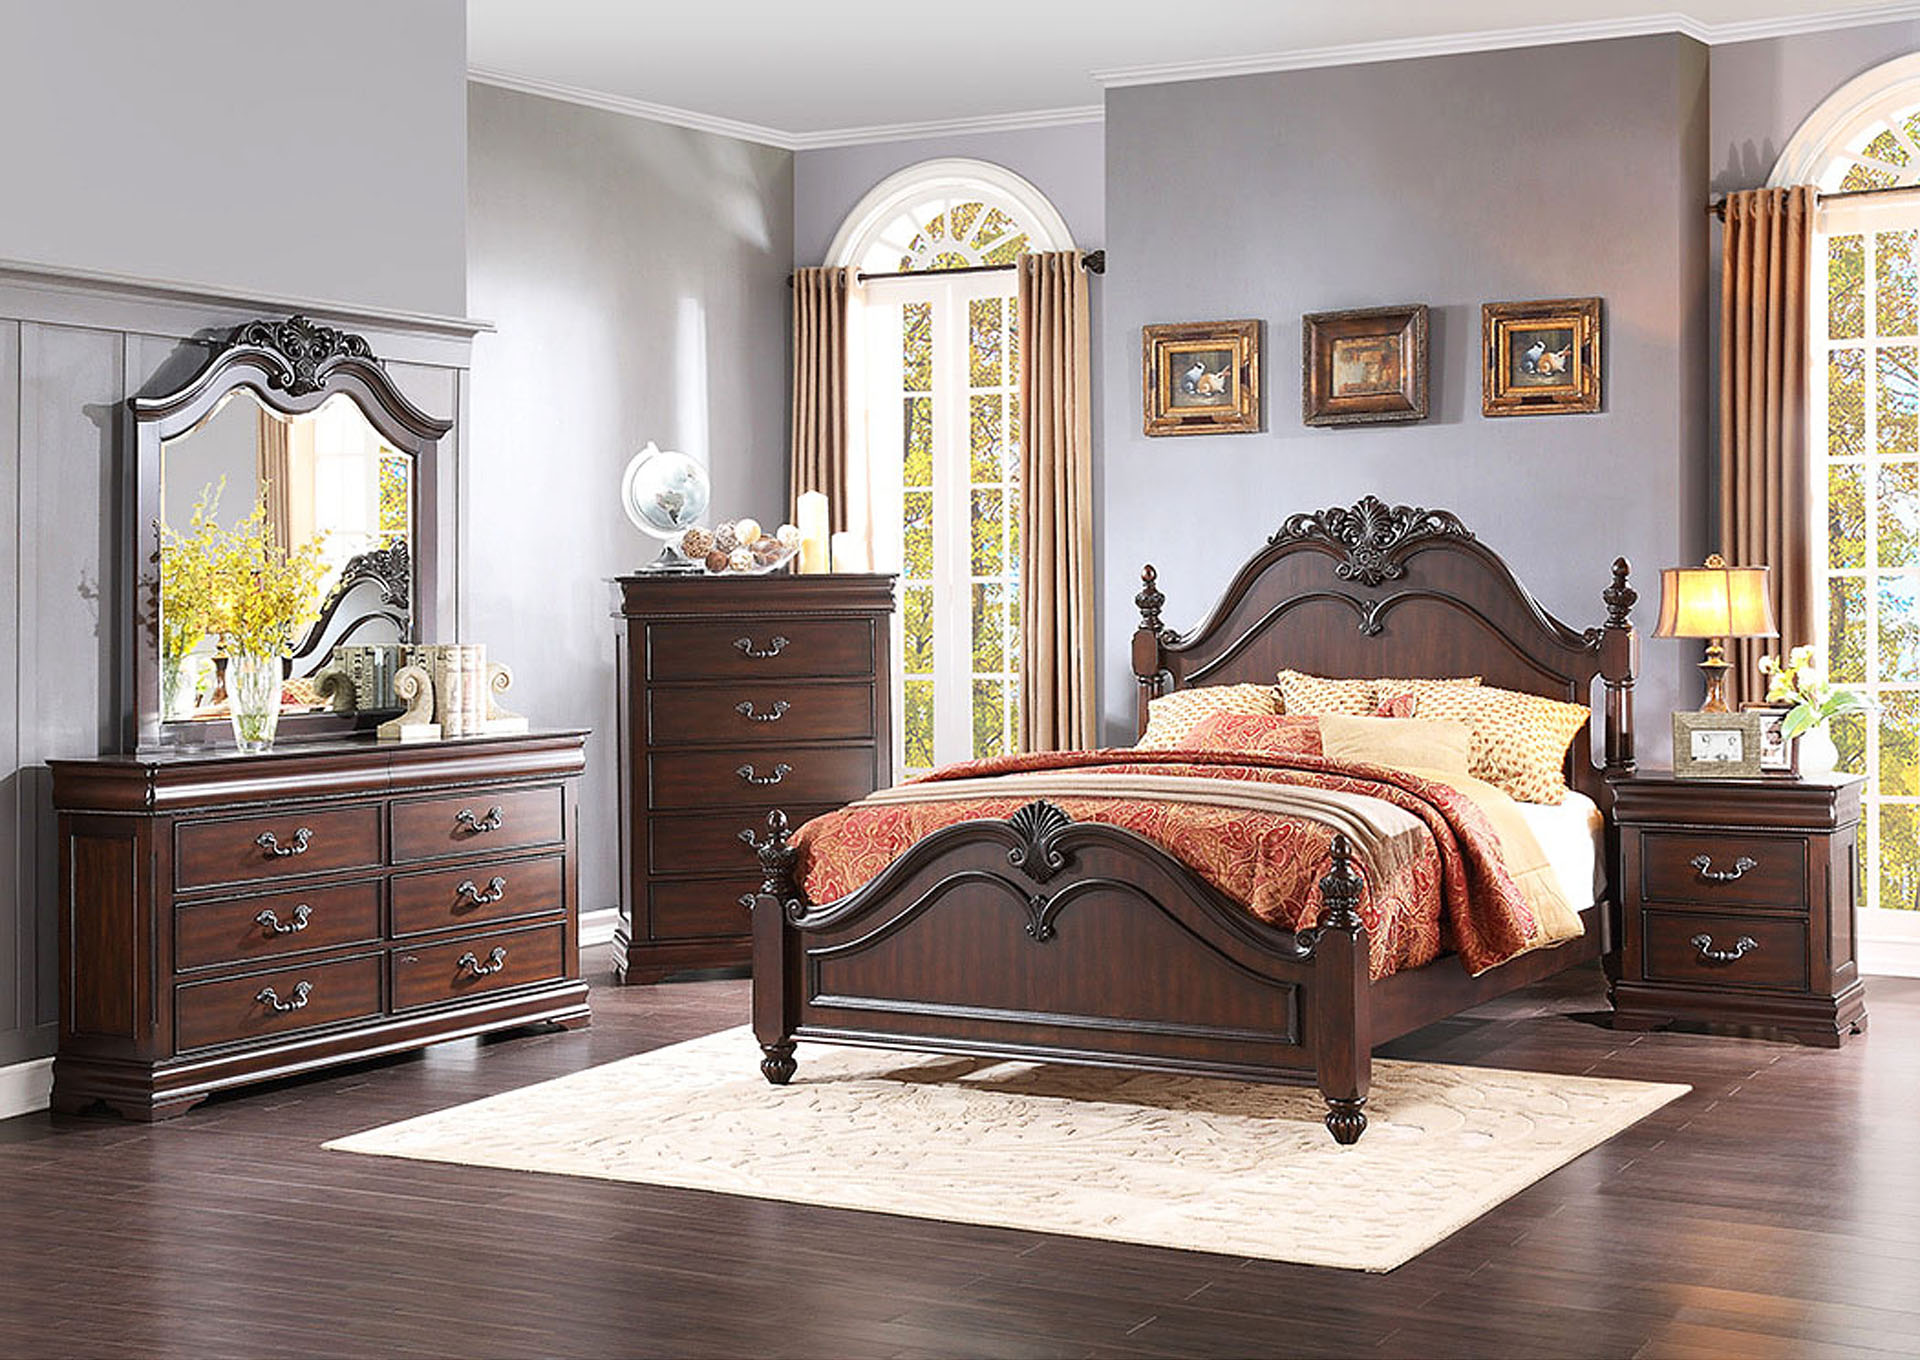 Mont Belvieu Cherry Dresser w/ 2 Hidden Drawers,Homelegance